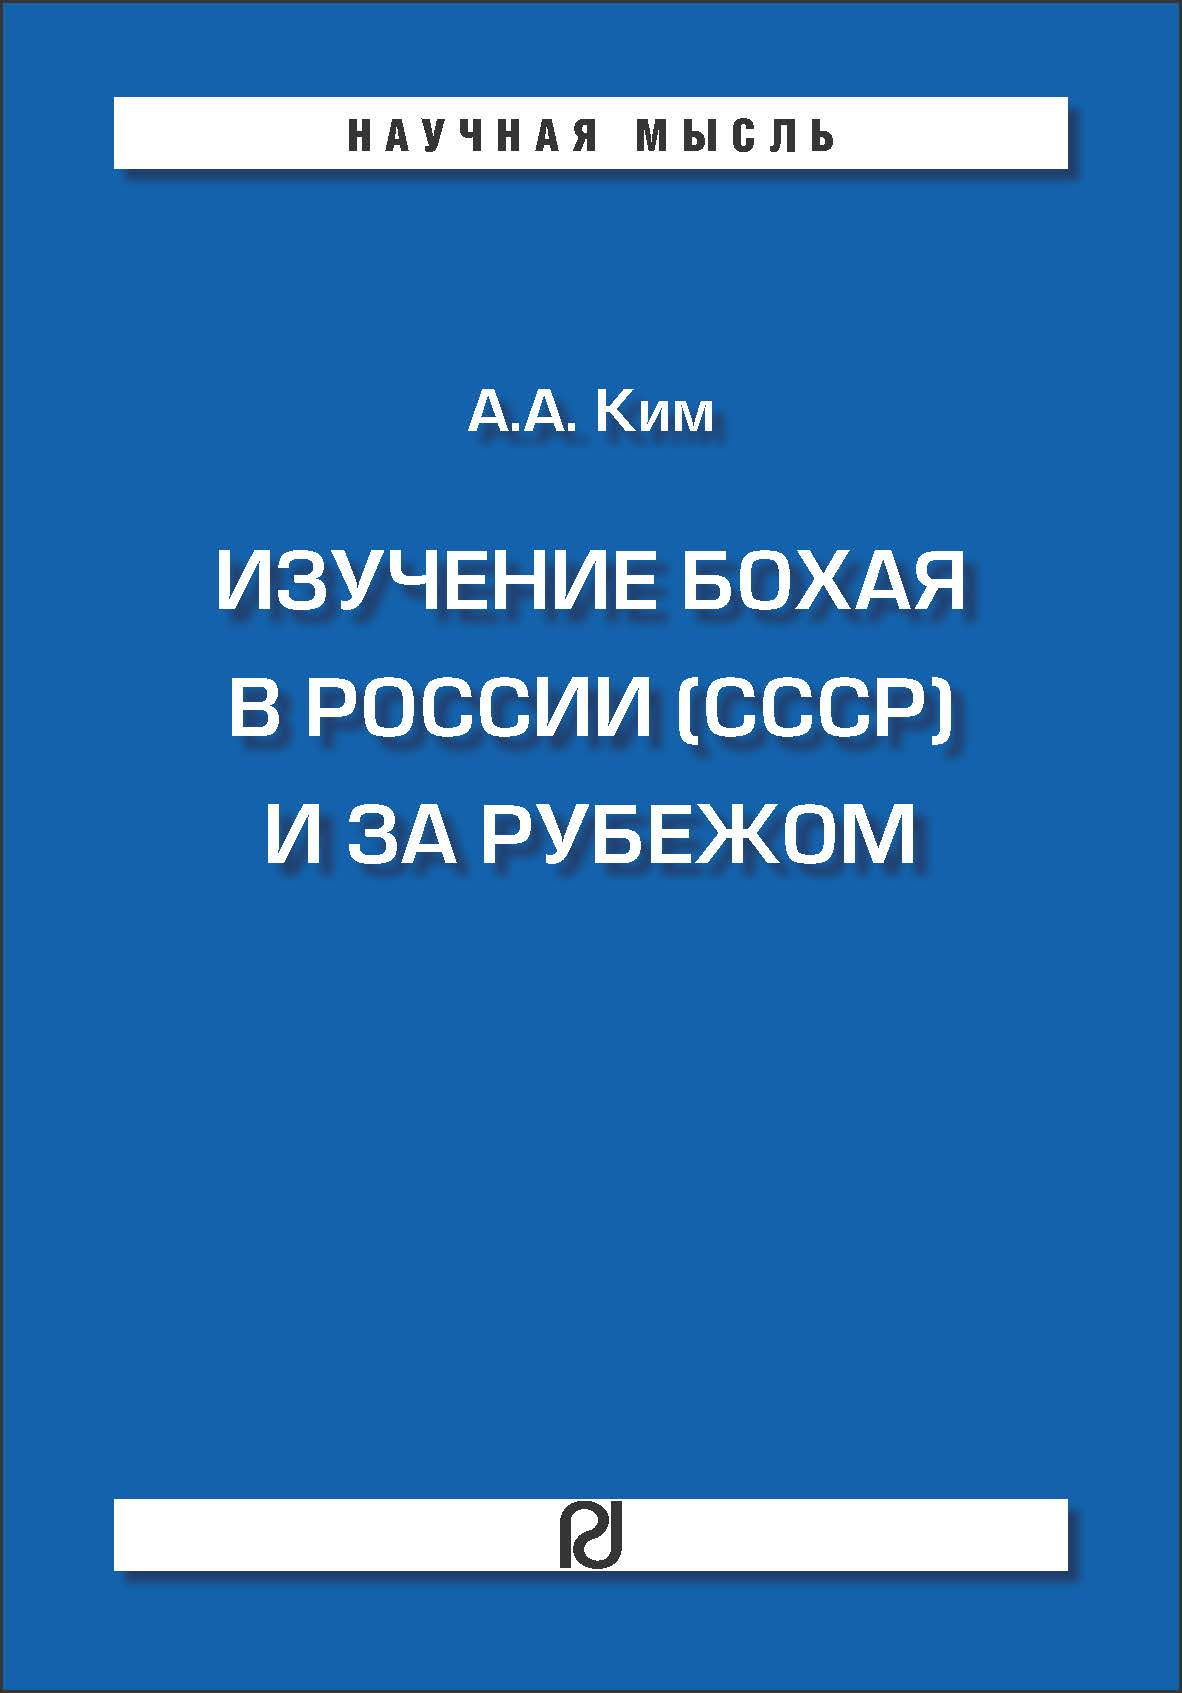 The studies of Bohai in Russia (USSR) and abroad